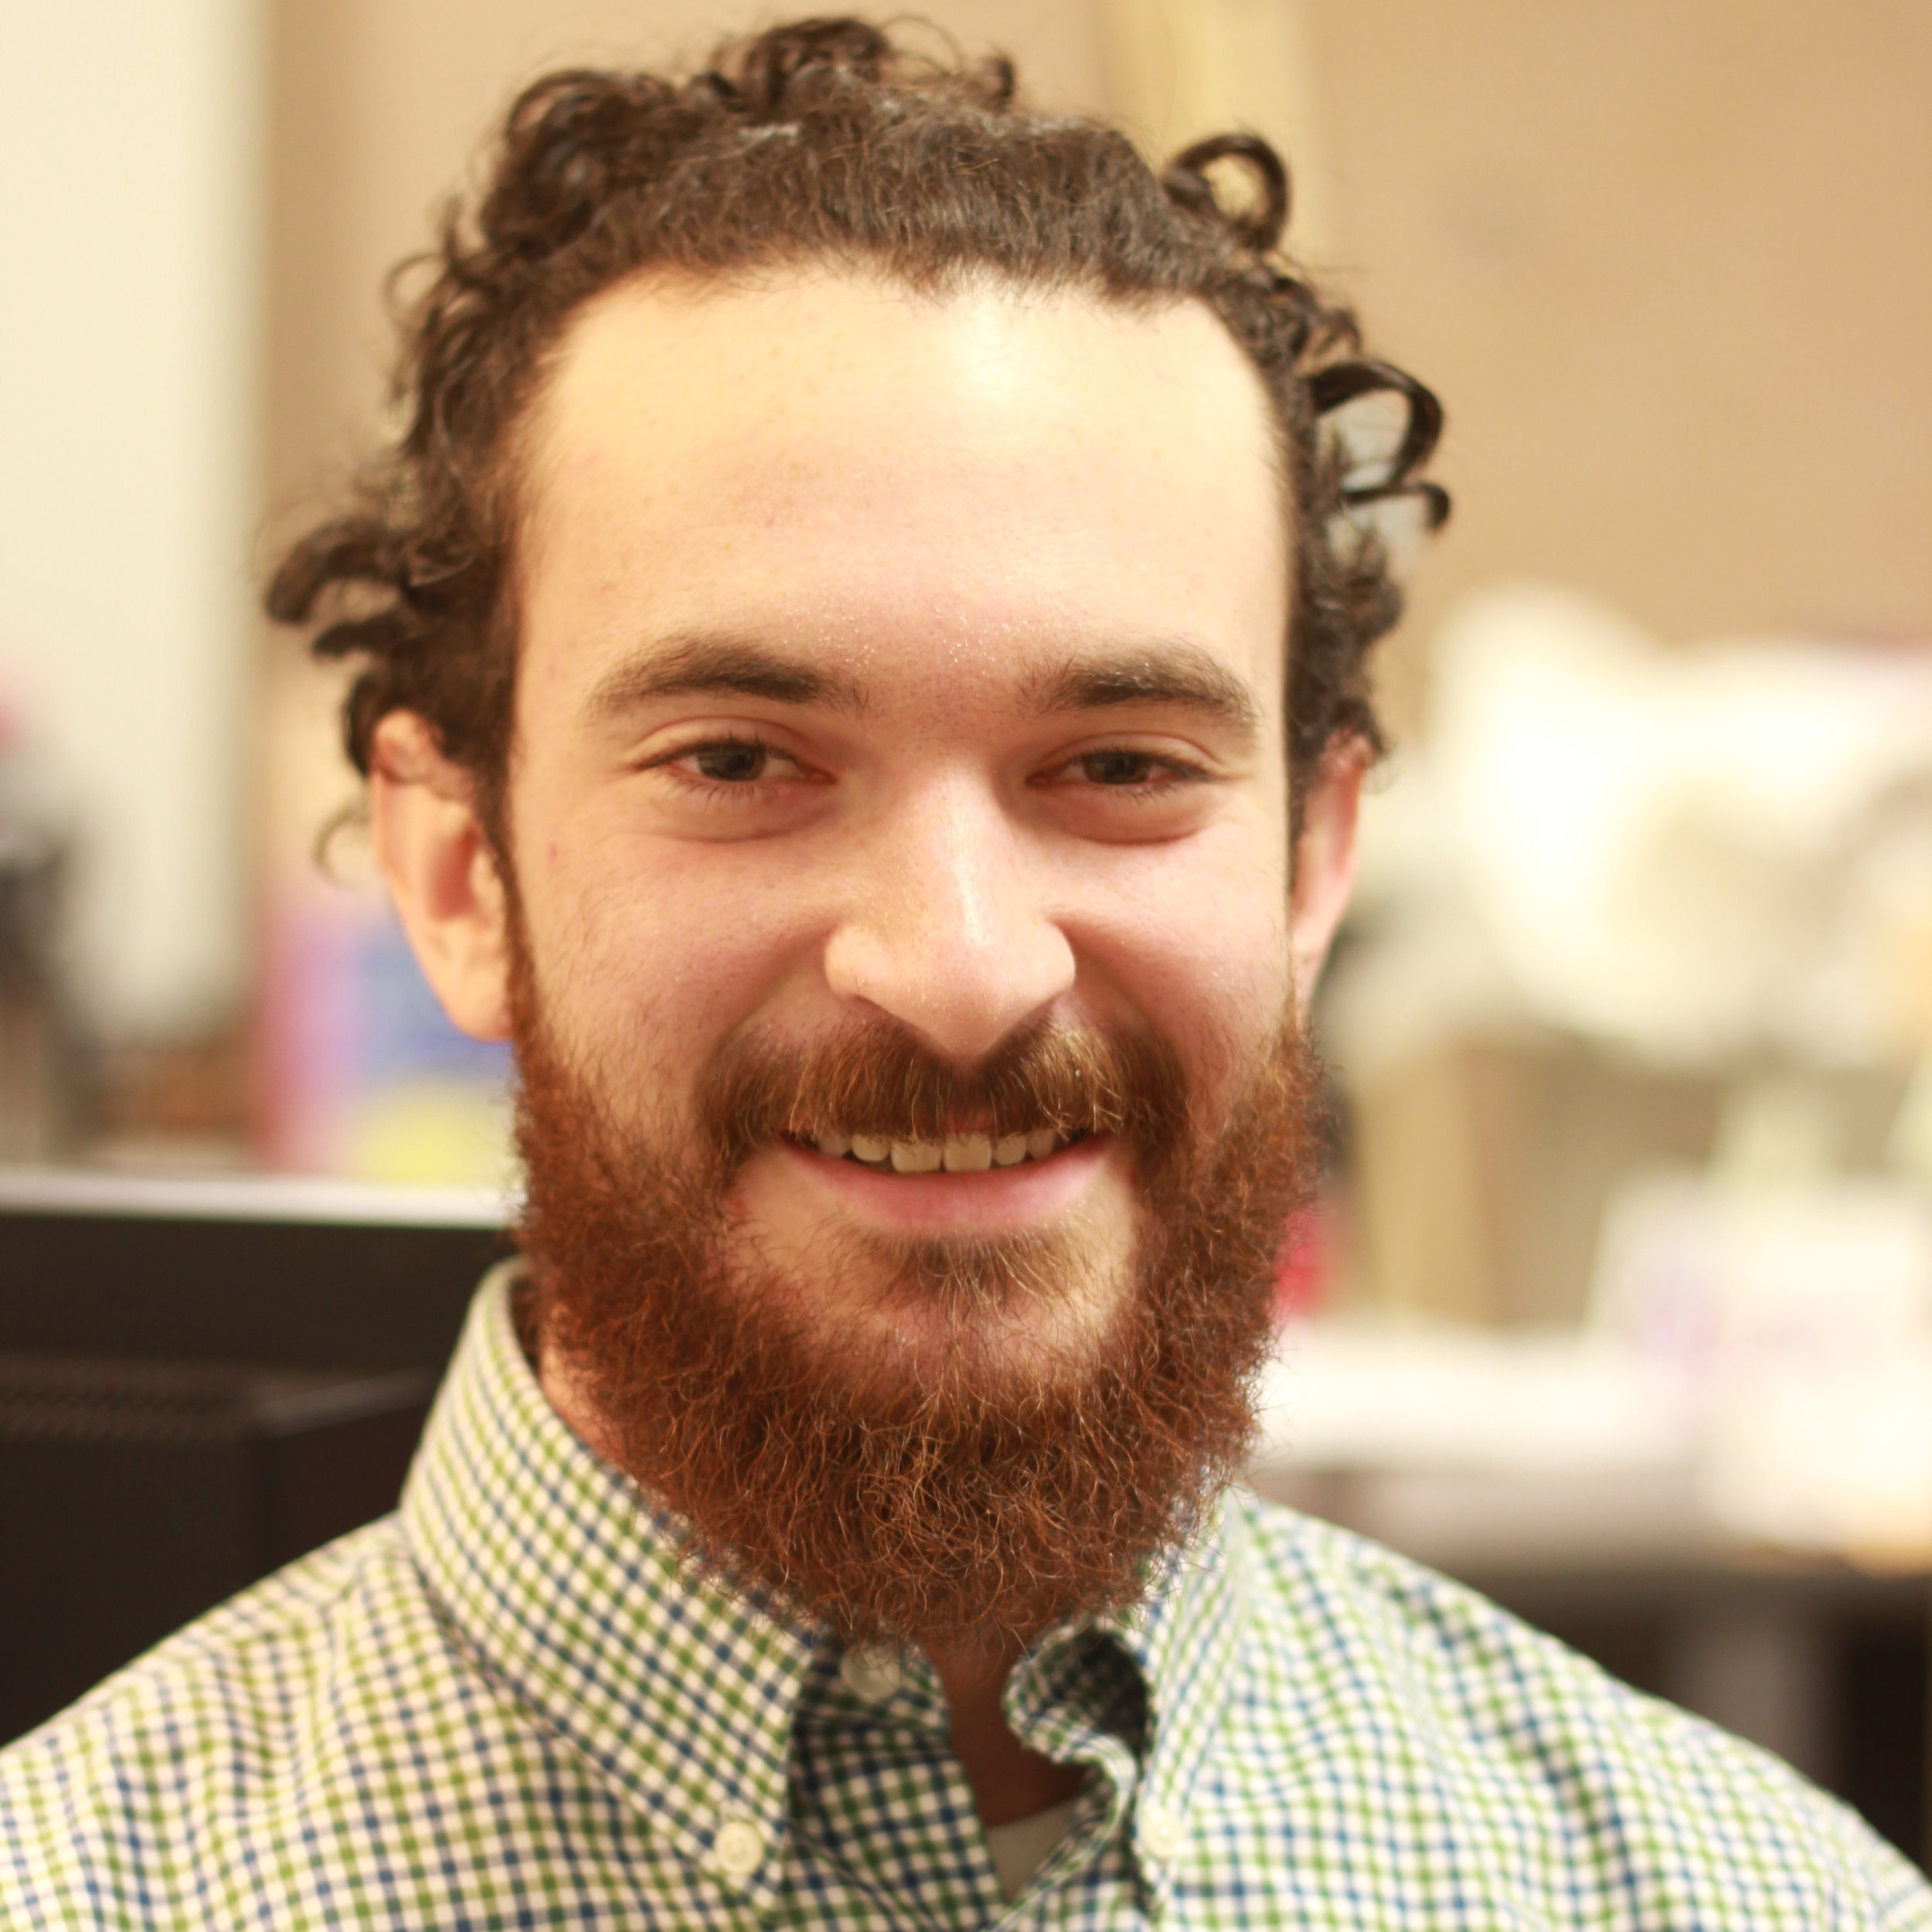 Jason Reitman - Jason is pursuing his PhD exploring cognition in teams of humans and machines. Through his current work observing elite esports teams, he aims to understand how these systems distribute cognitive work to ensure the team's success.jreitman@uci.edu